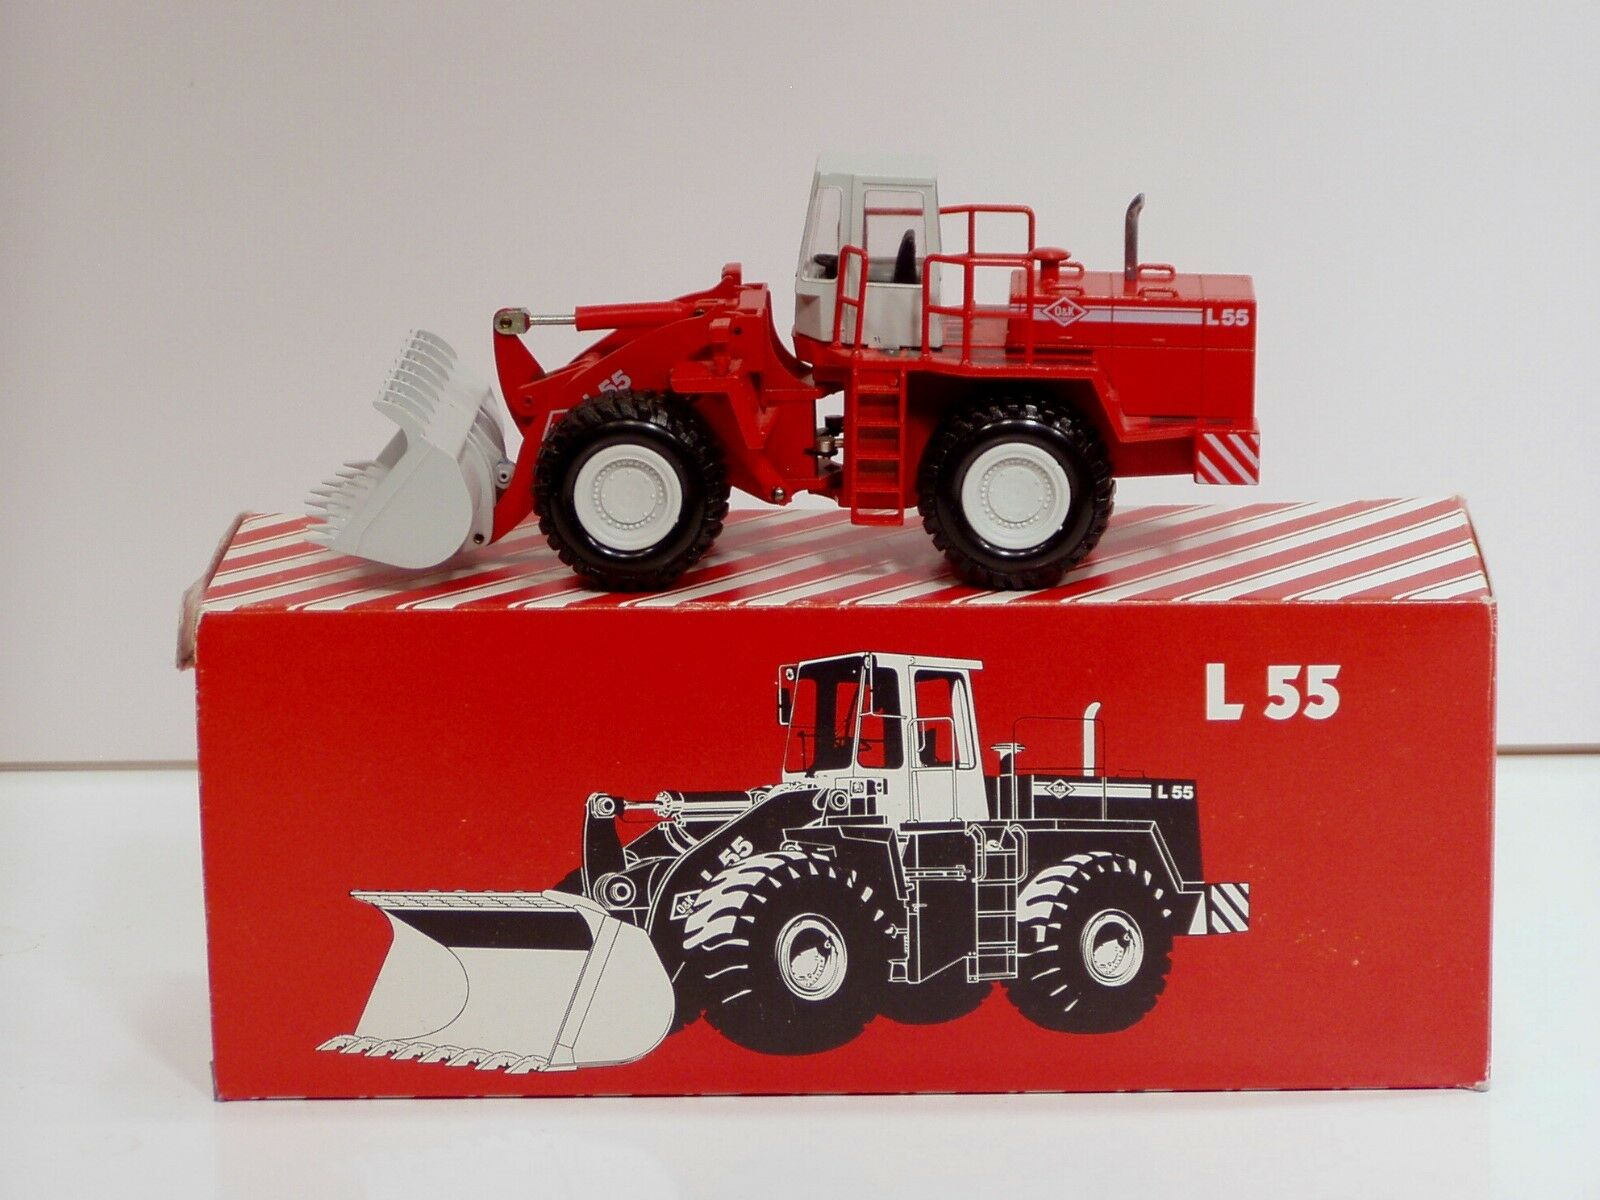 O&K L55 Wheel Loader - 1 50 - Conrad  2422 - N.MIB